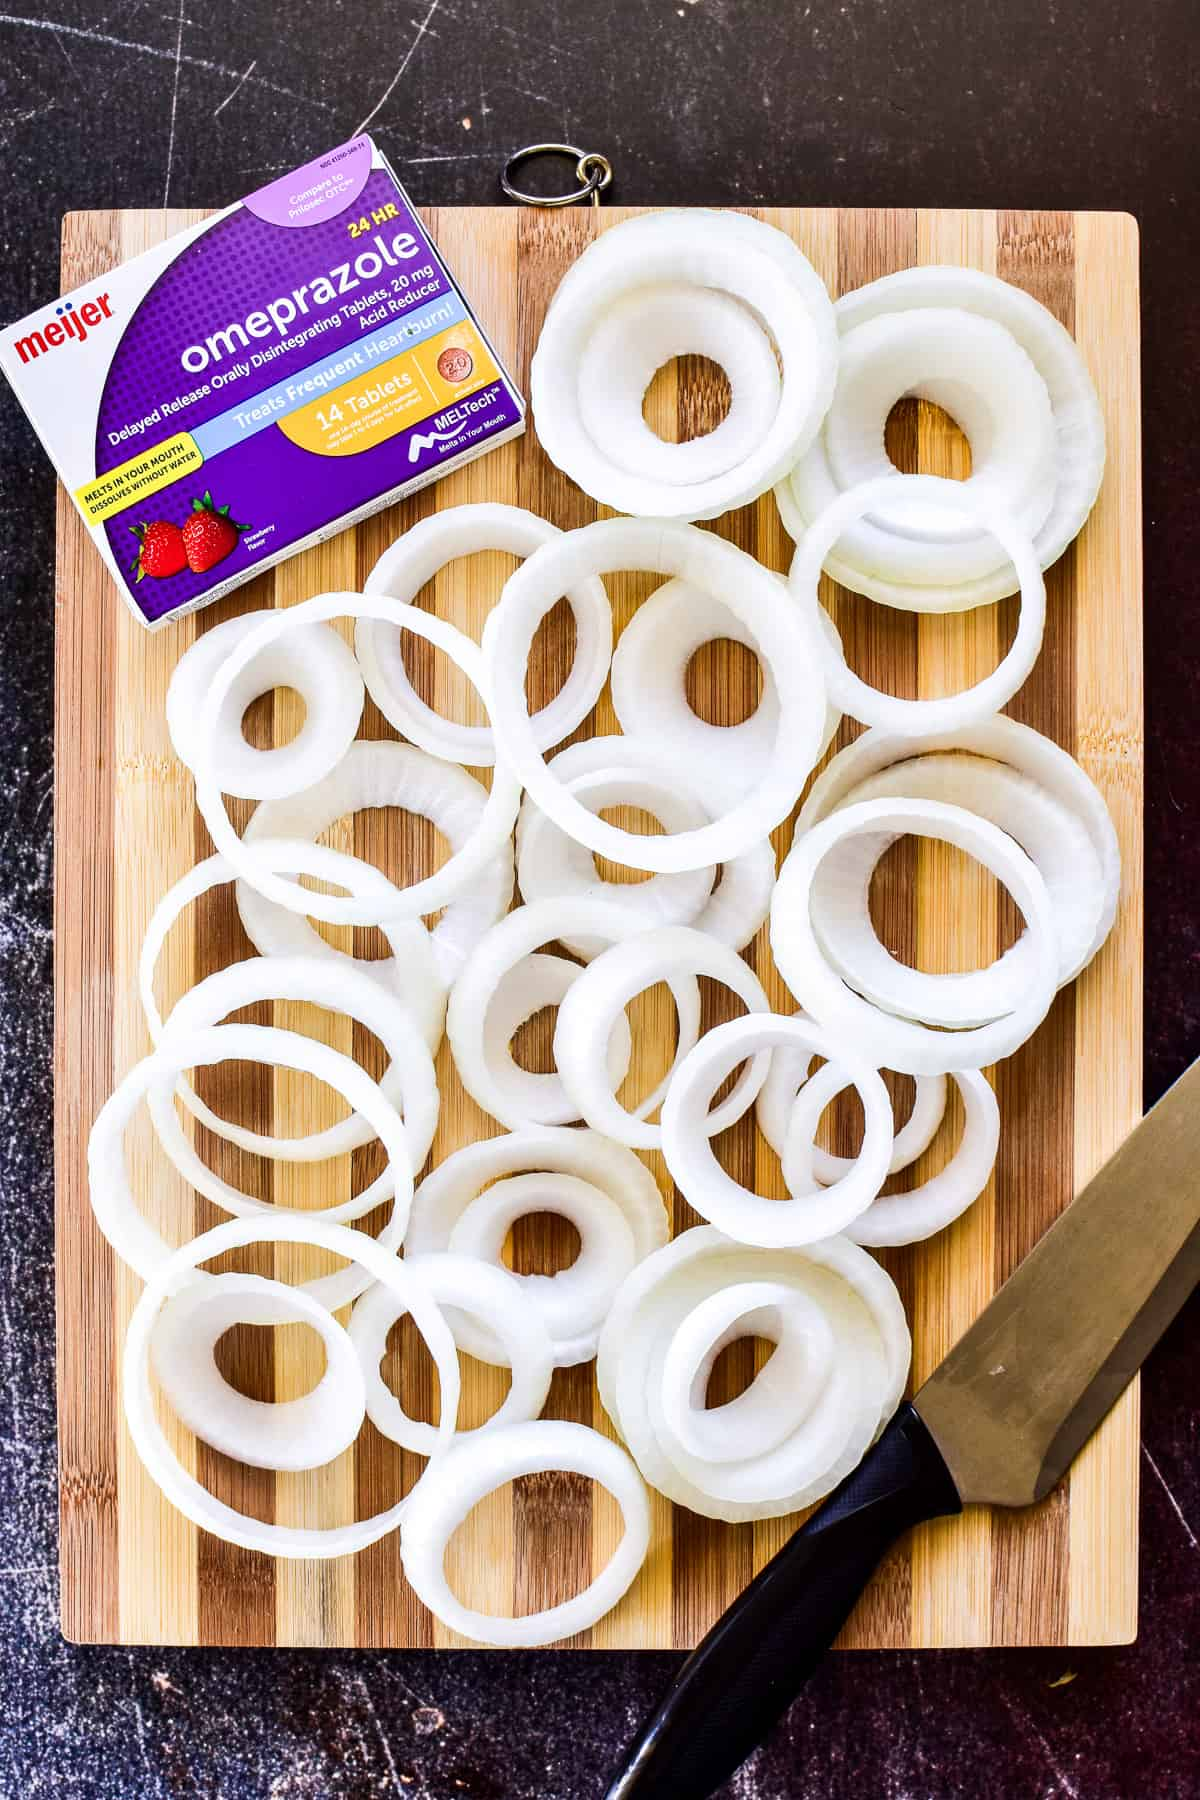 Sliced raw onions for onion rings